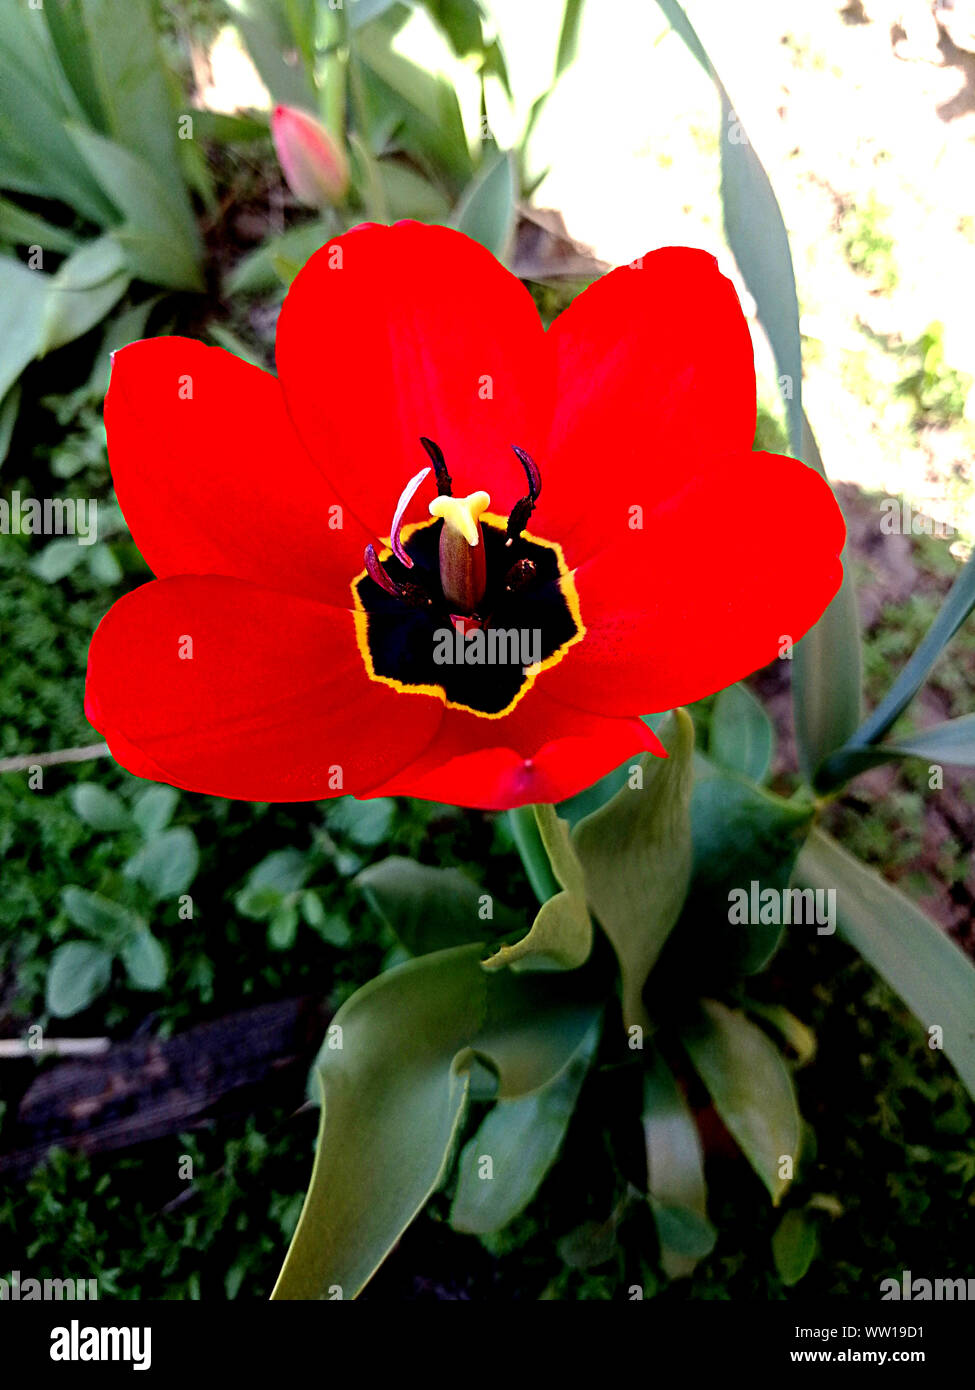 red open Tulip with black middle on blurred background Stock Photo